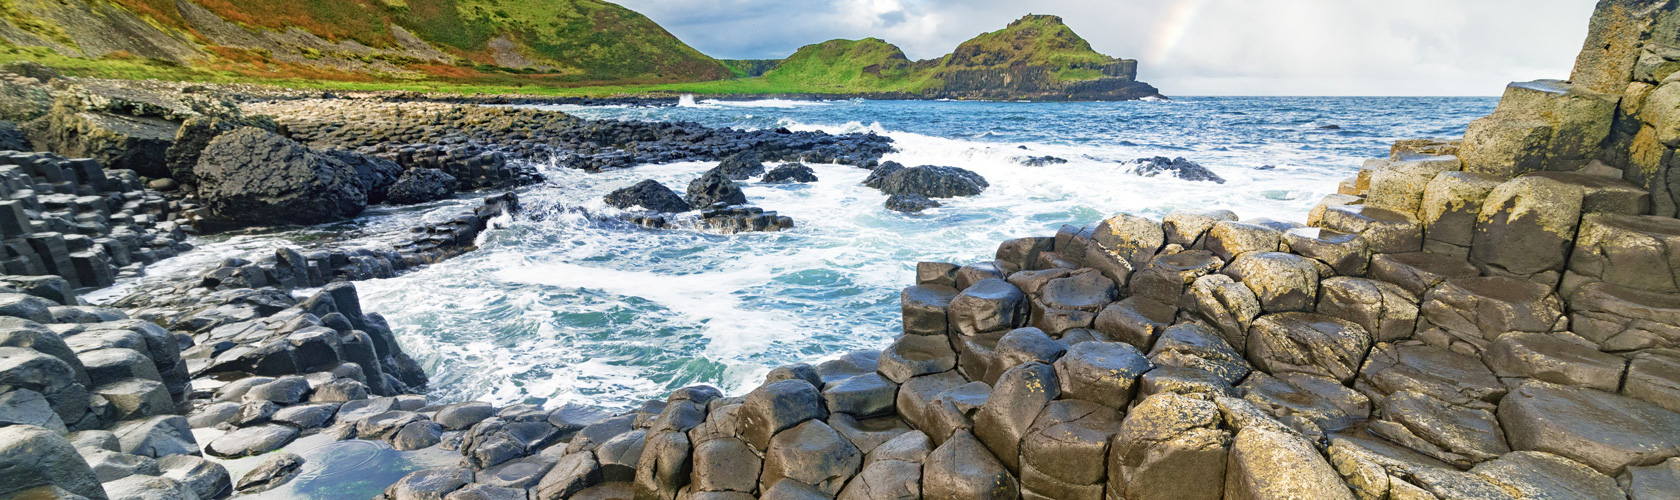 Highlights von Schottland & Irland